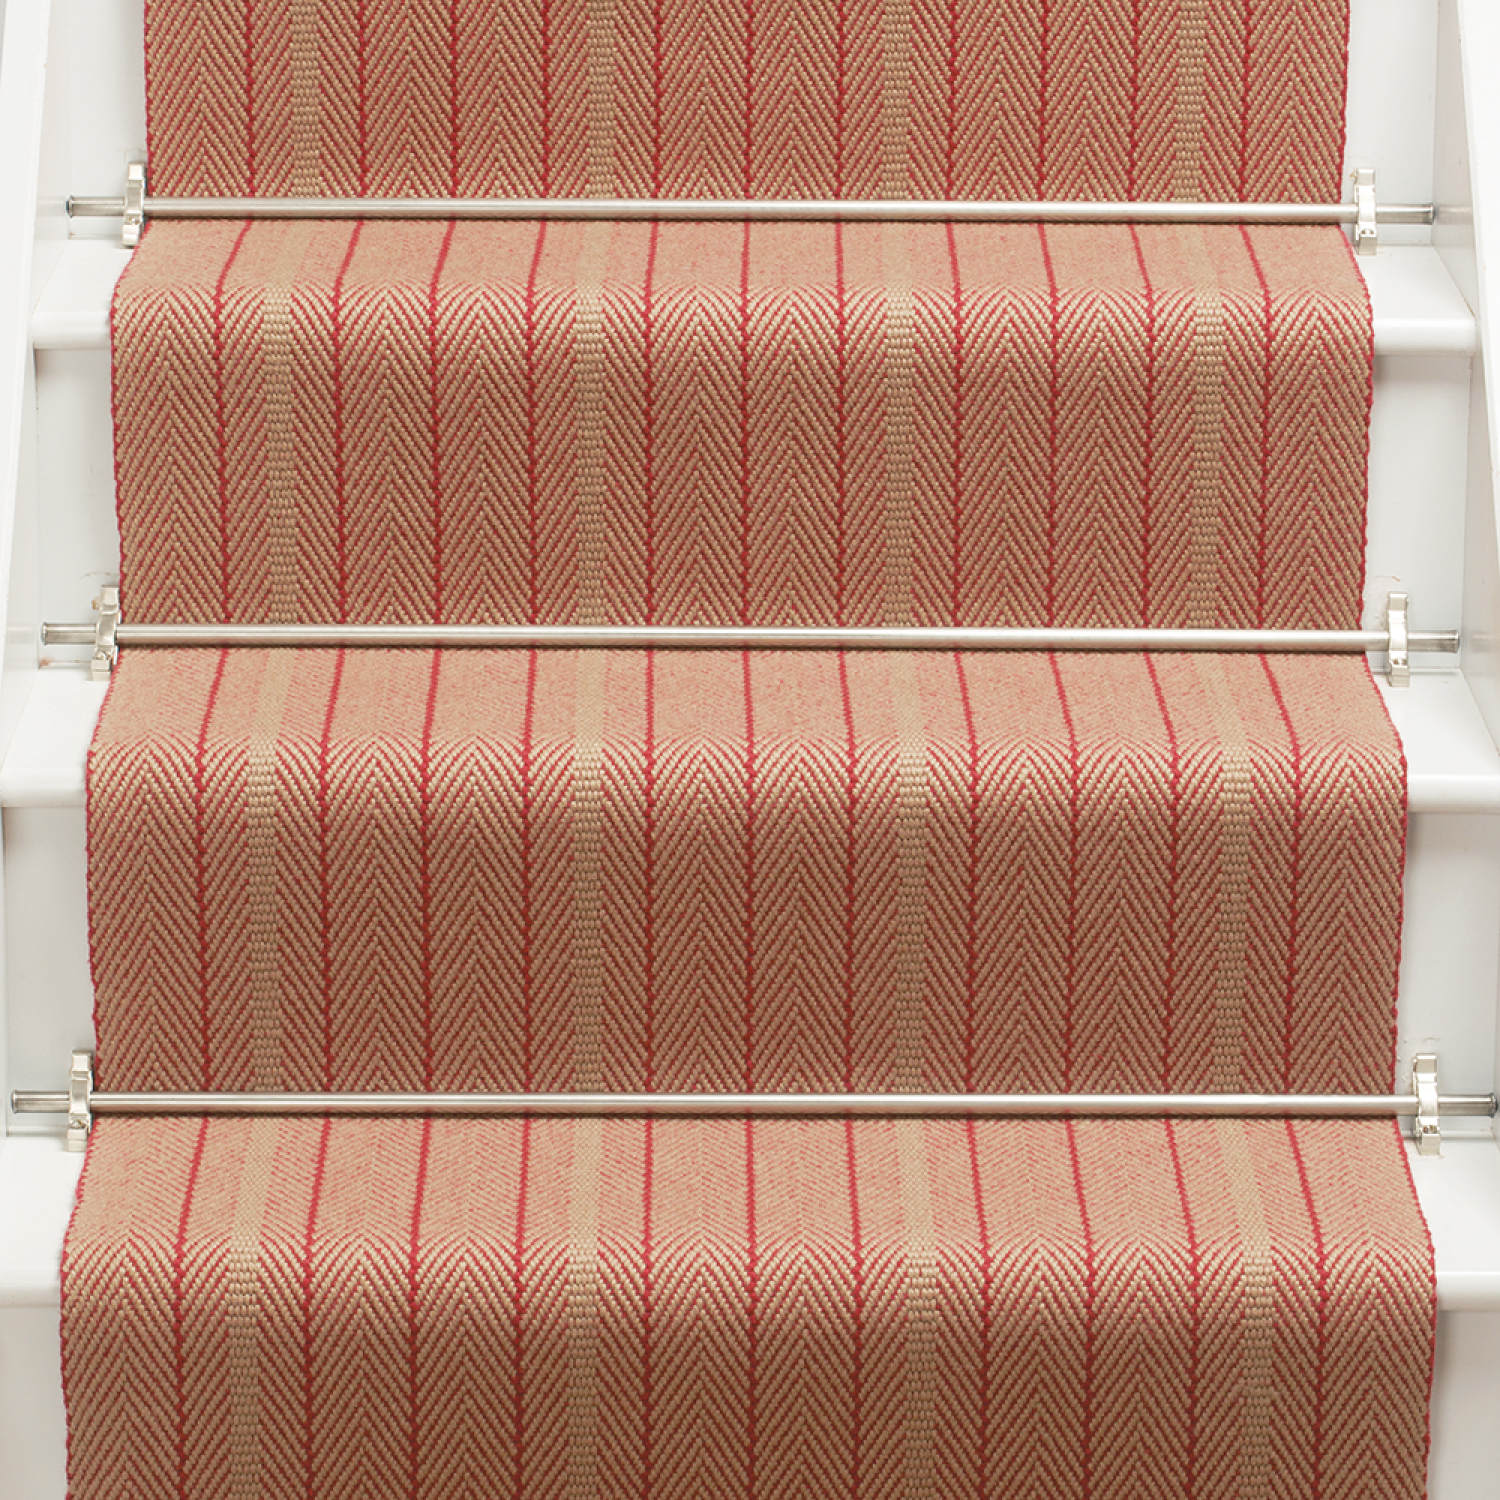 Flatweave Runners Roger Oates Design Runners And Rugs